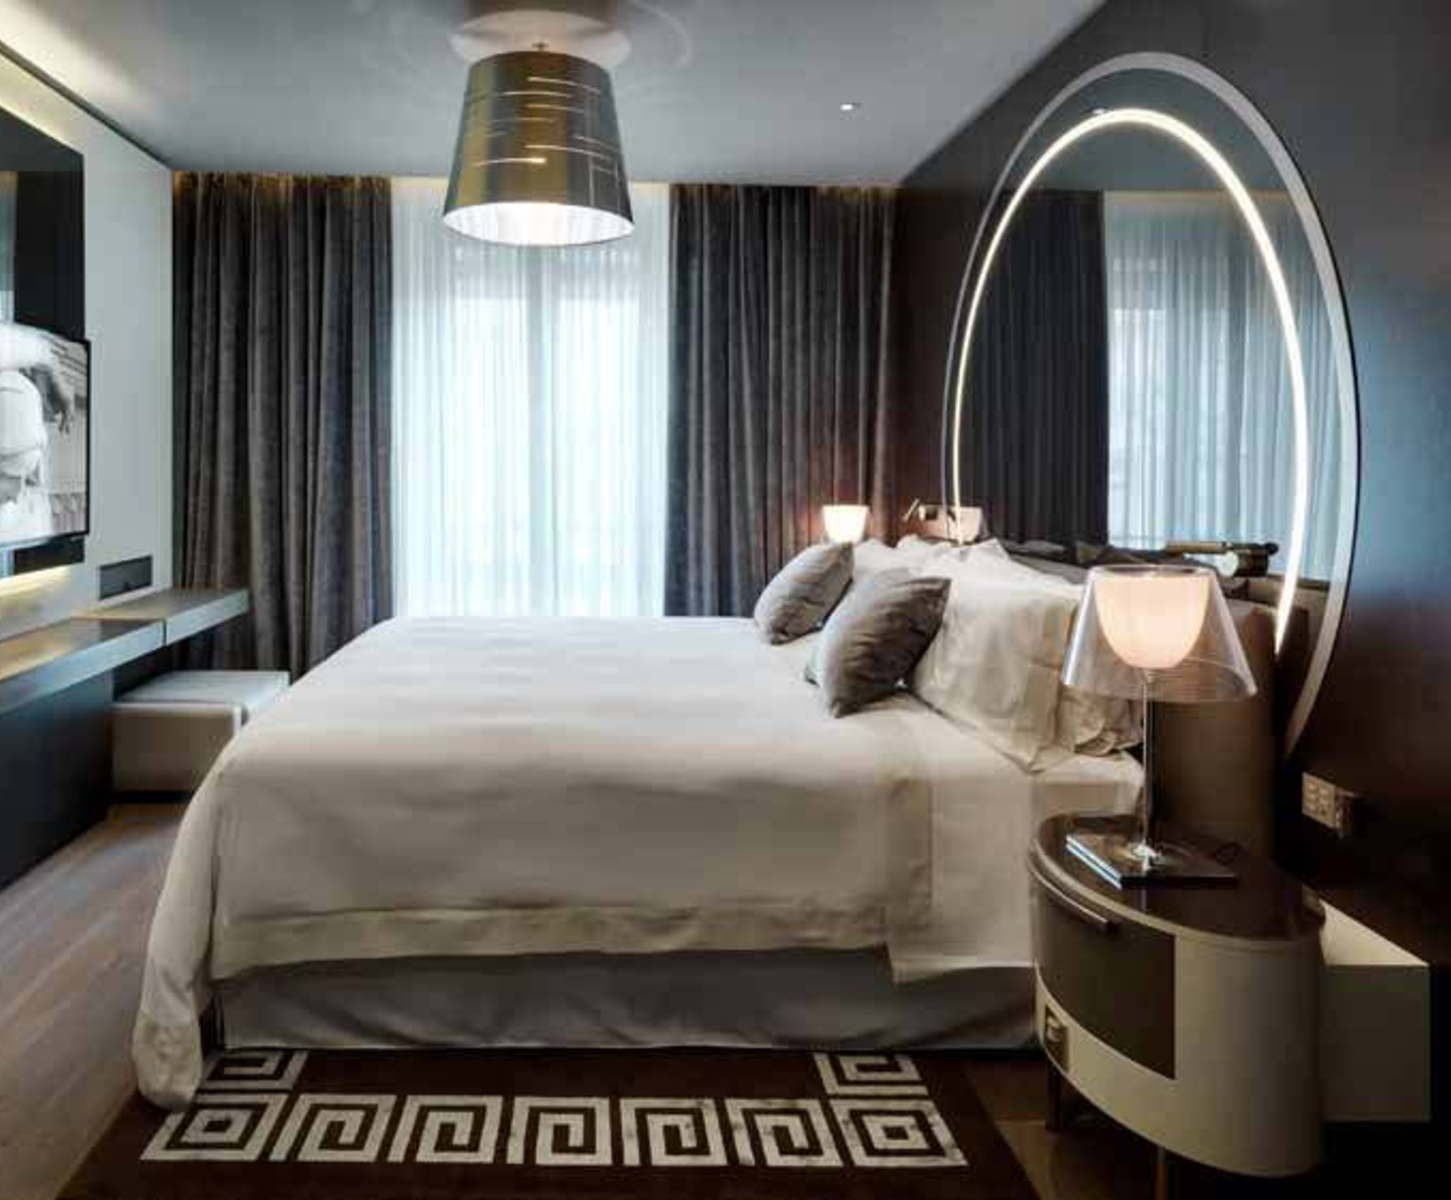 10 Italian Interior Designers You Need To Know italian interior designer 10 Italian Interior Designers You Need To Know marco piva cut